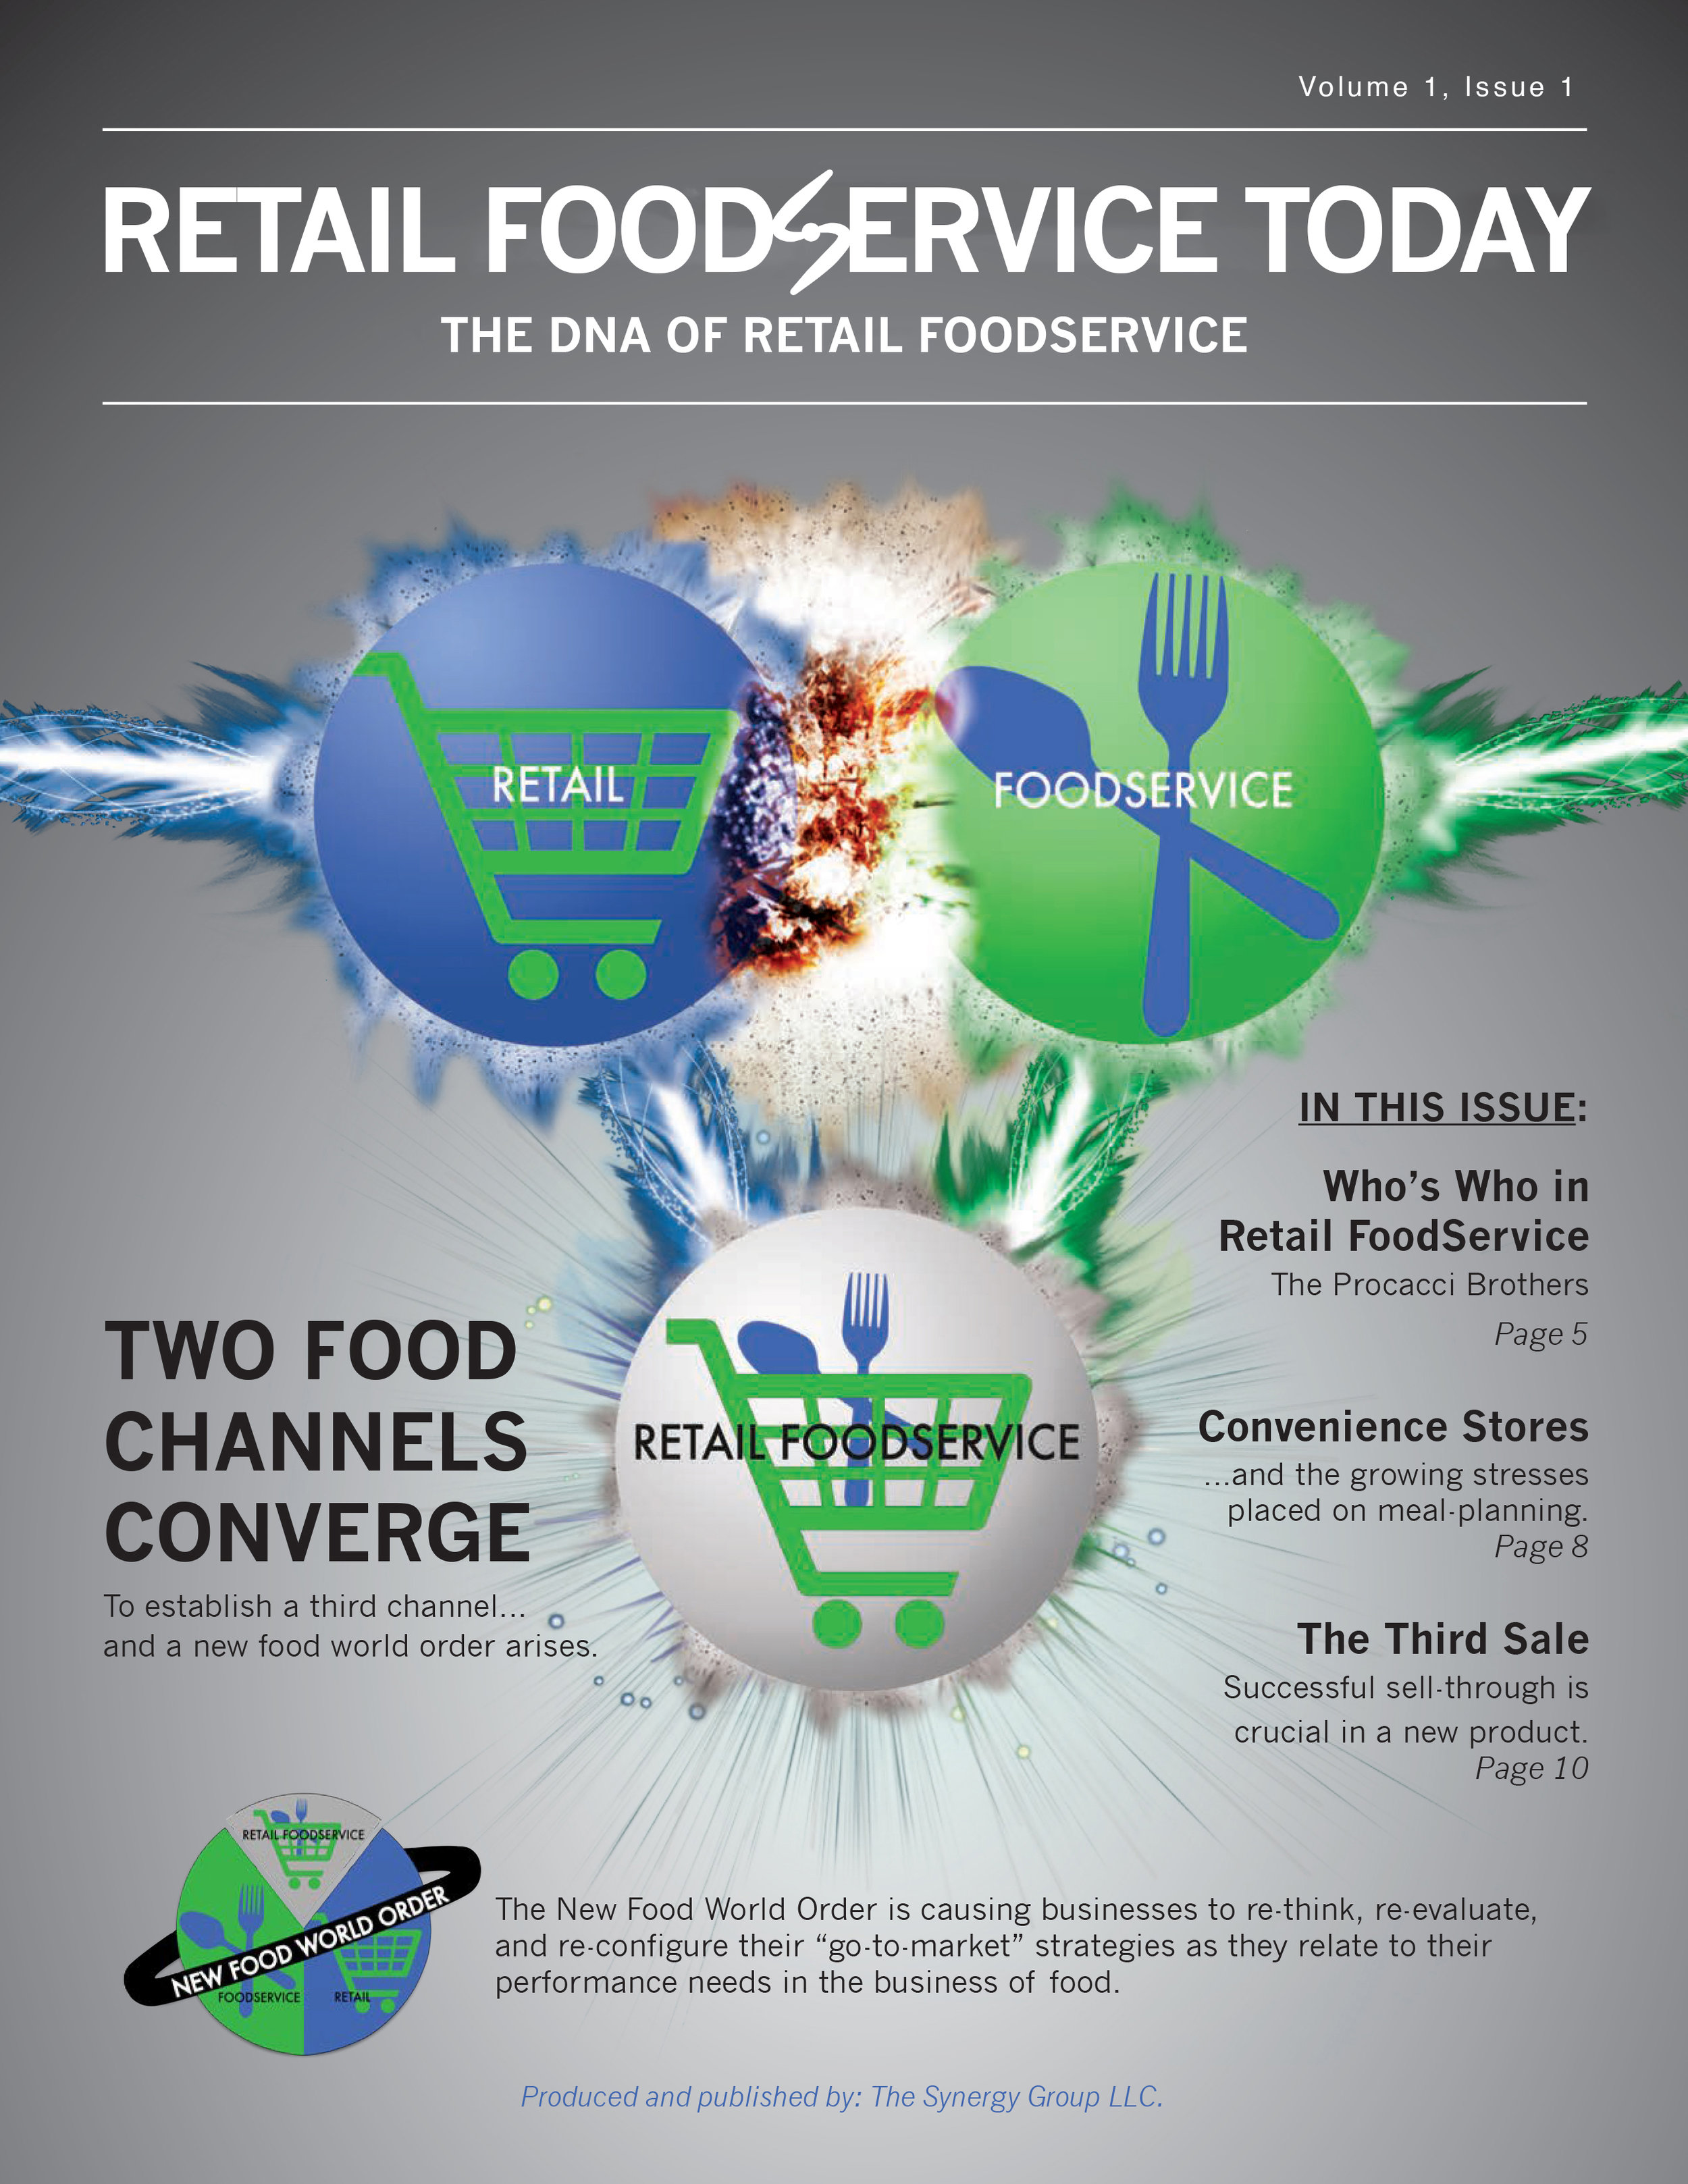 Retail food service today:  a synergy group publication